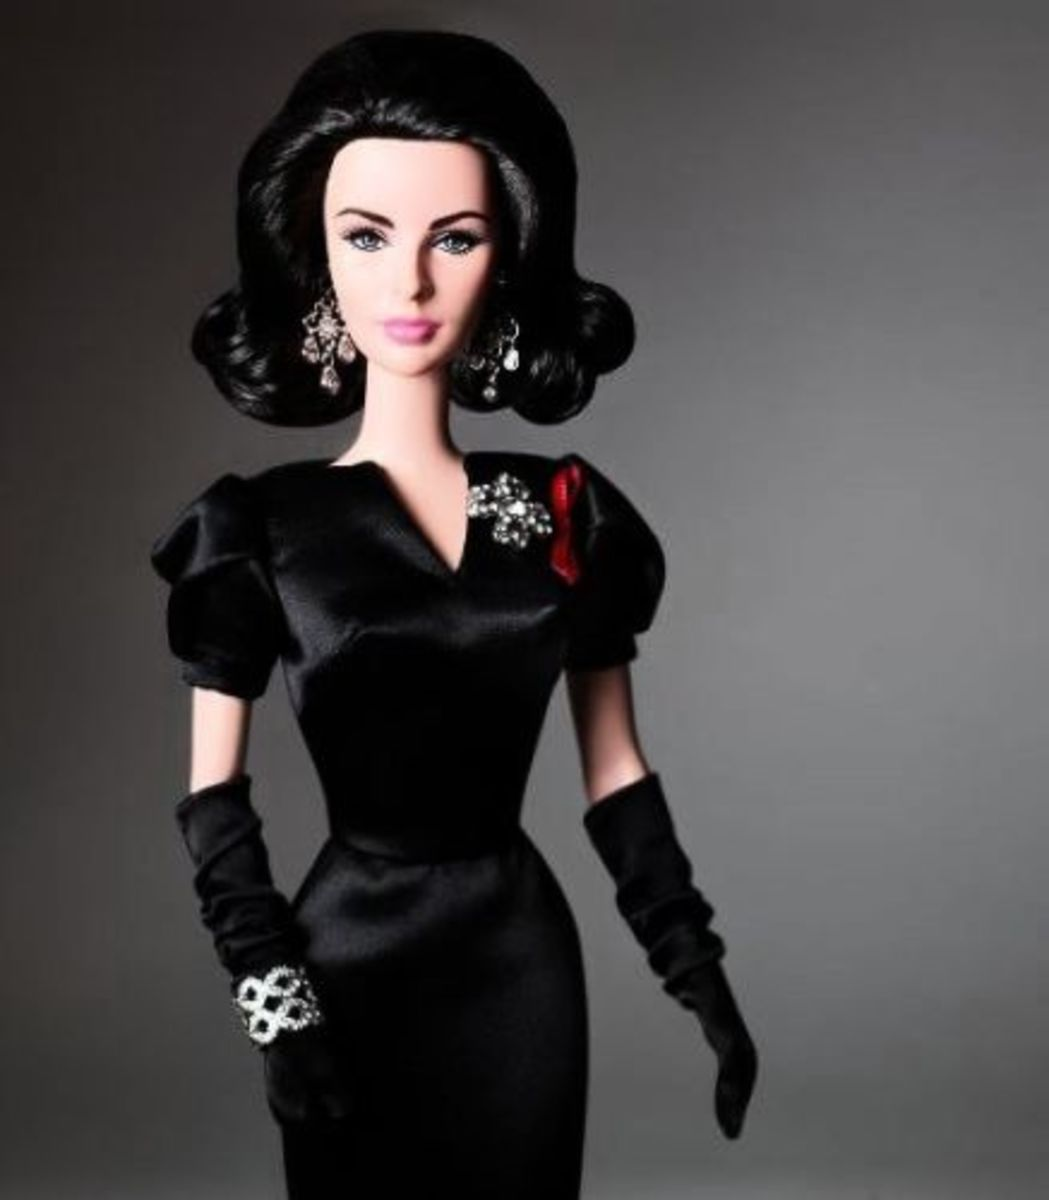 Elizabeth Taylor Barbie doll with her remarkable violet eyes